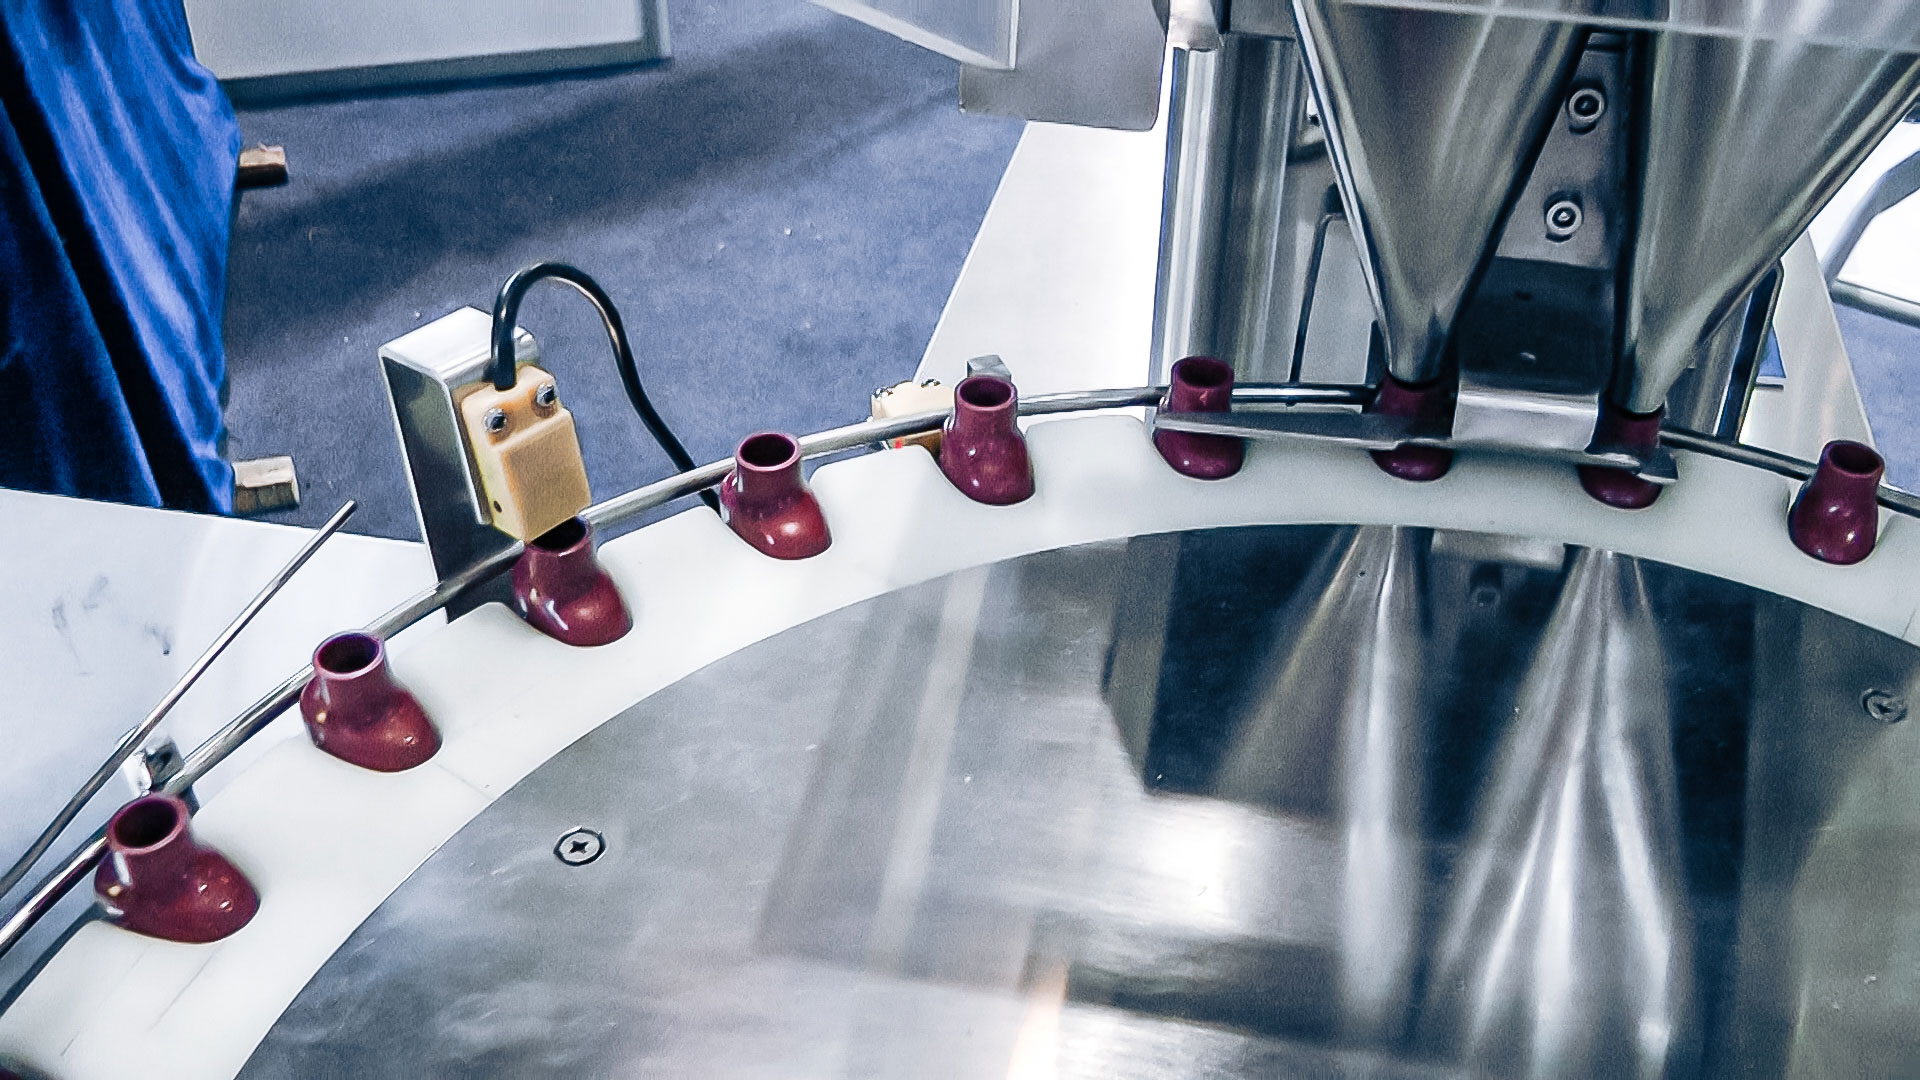 Automatic equipment for vibration feeding plastic bottles in pharmaceutical production